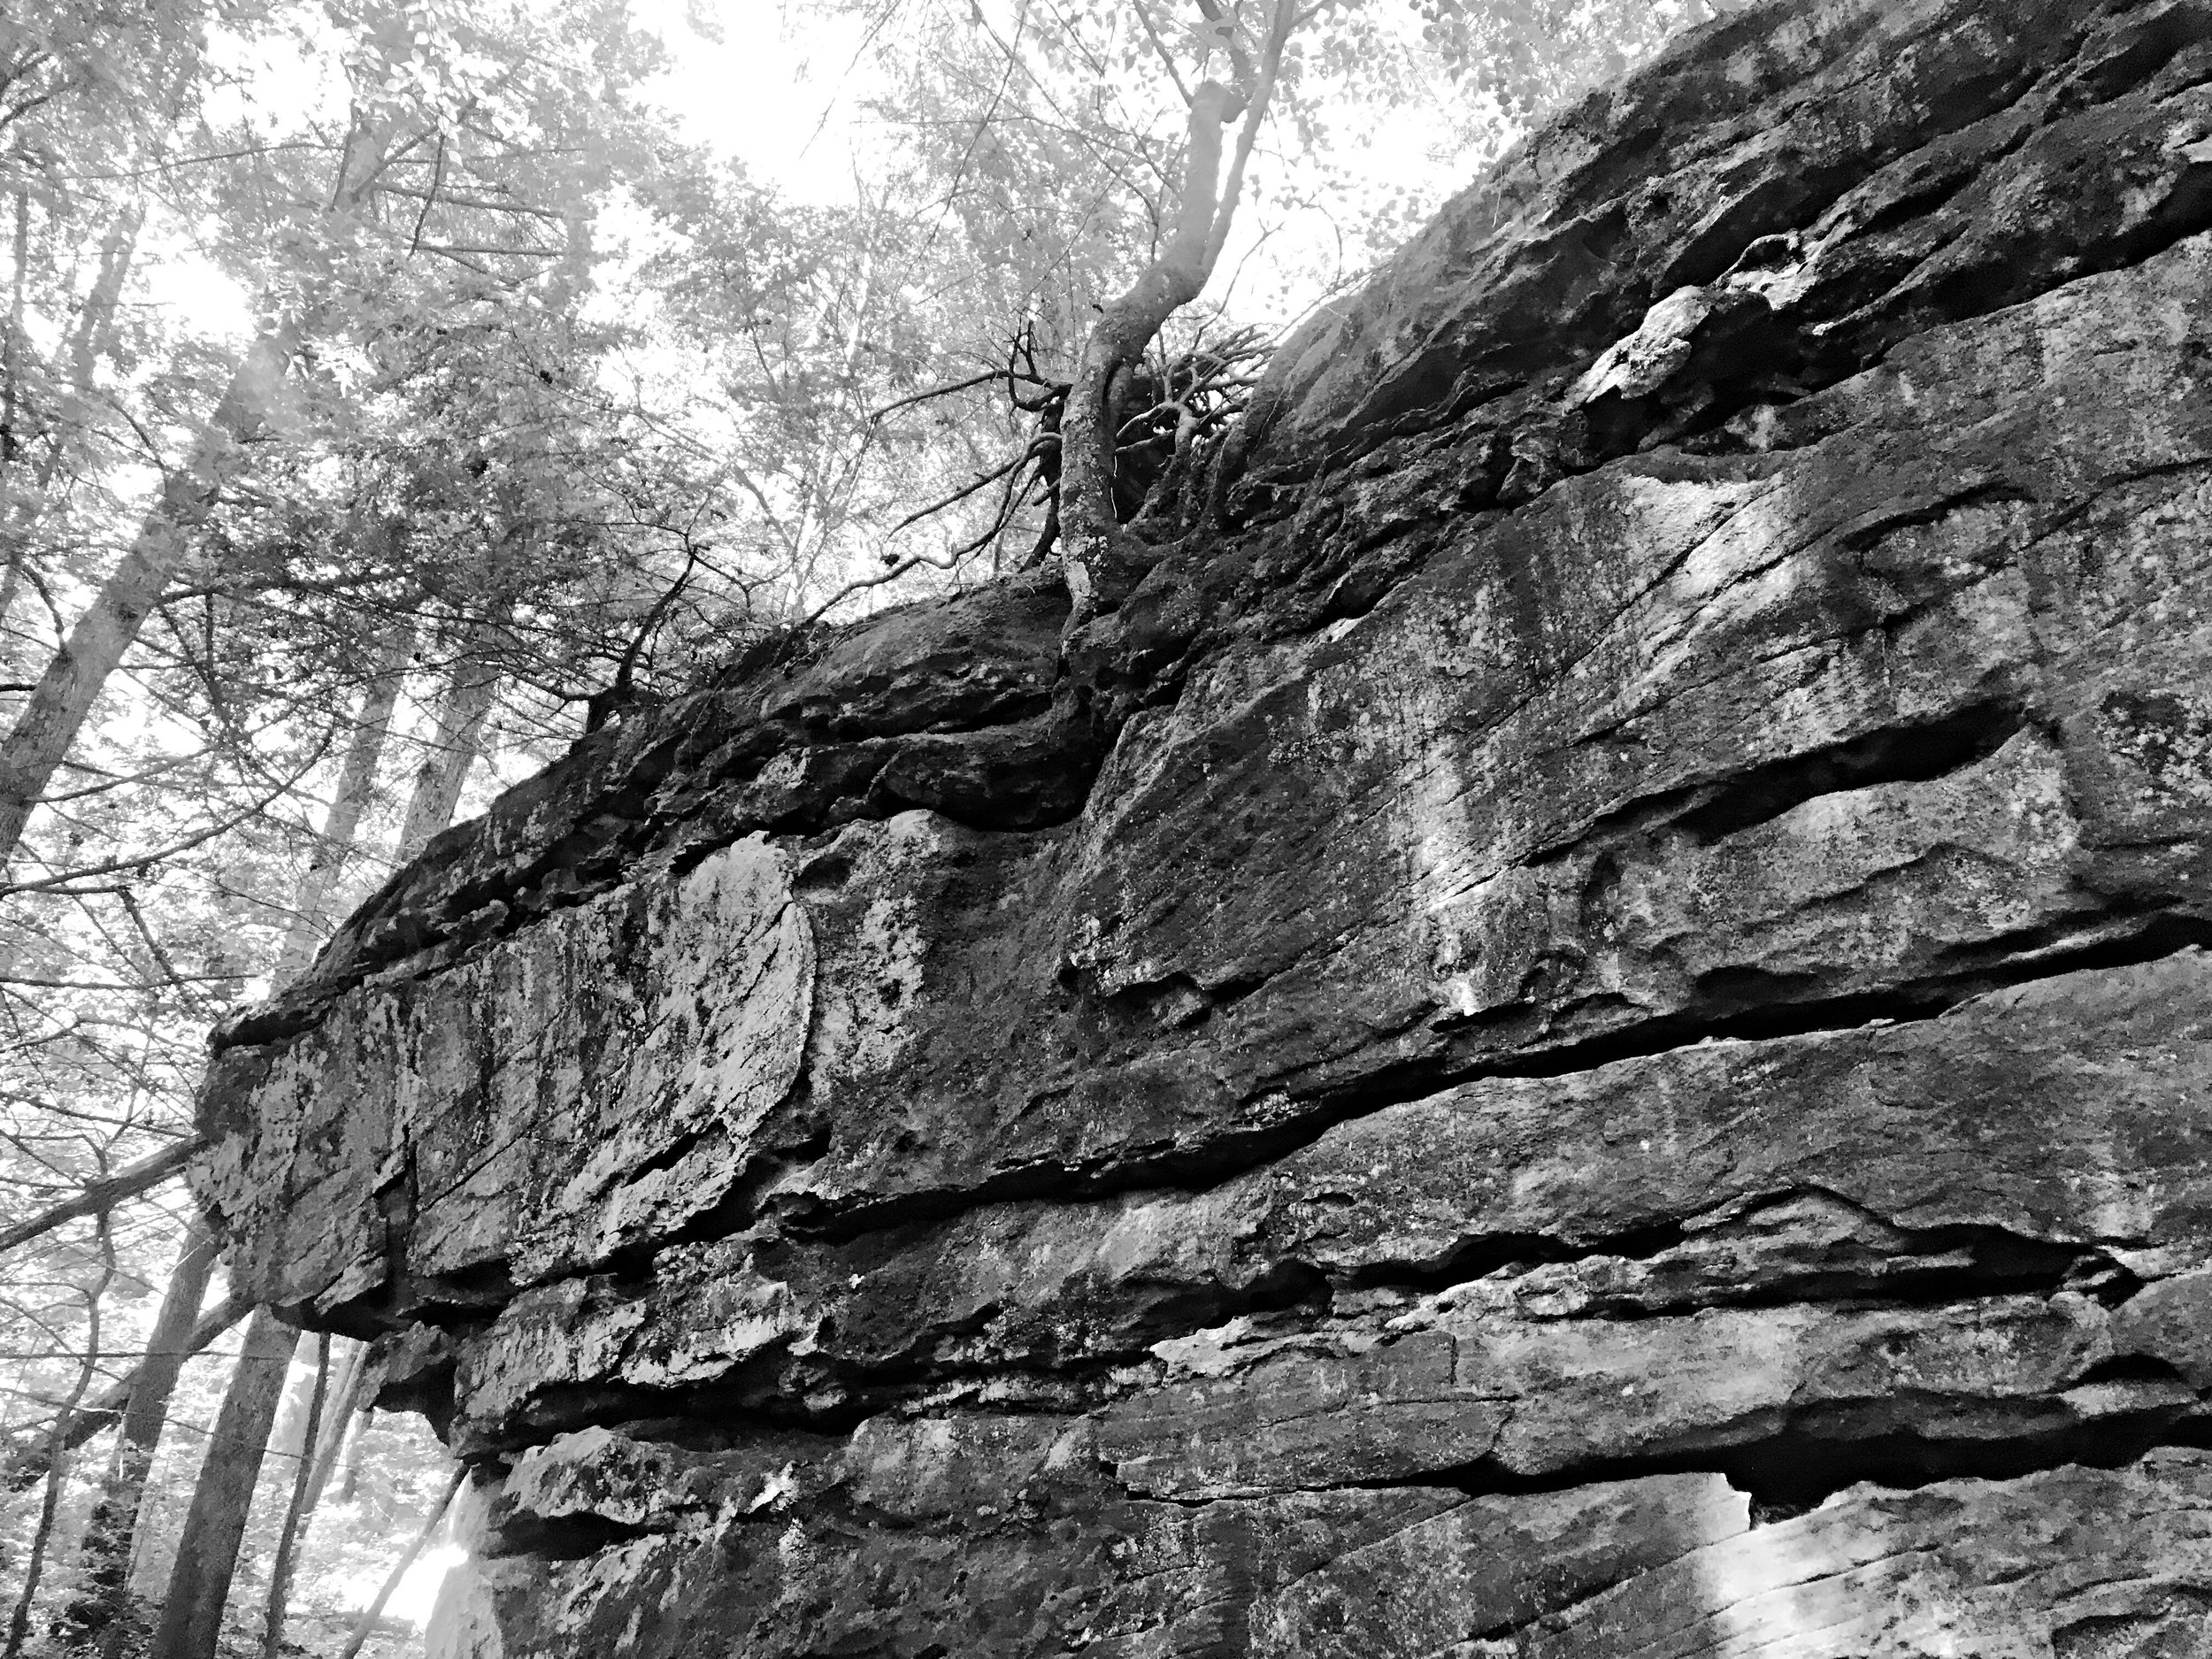 obed-wild-and-scenic-river-boulder-field-tennessee_0266.JPG